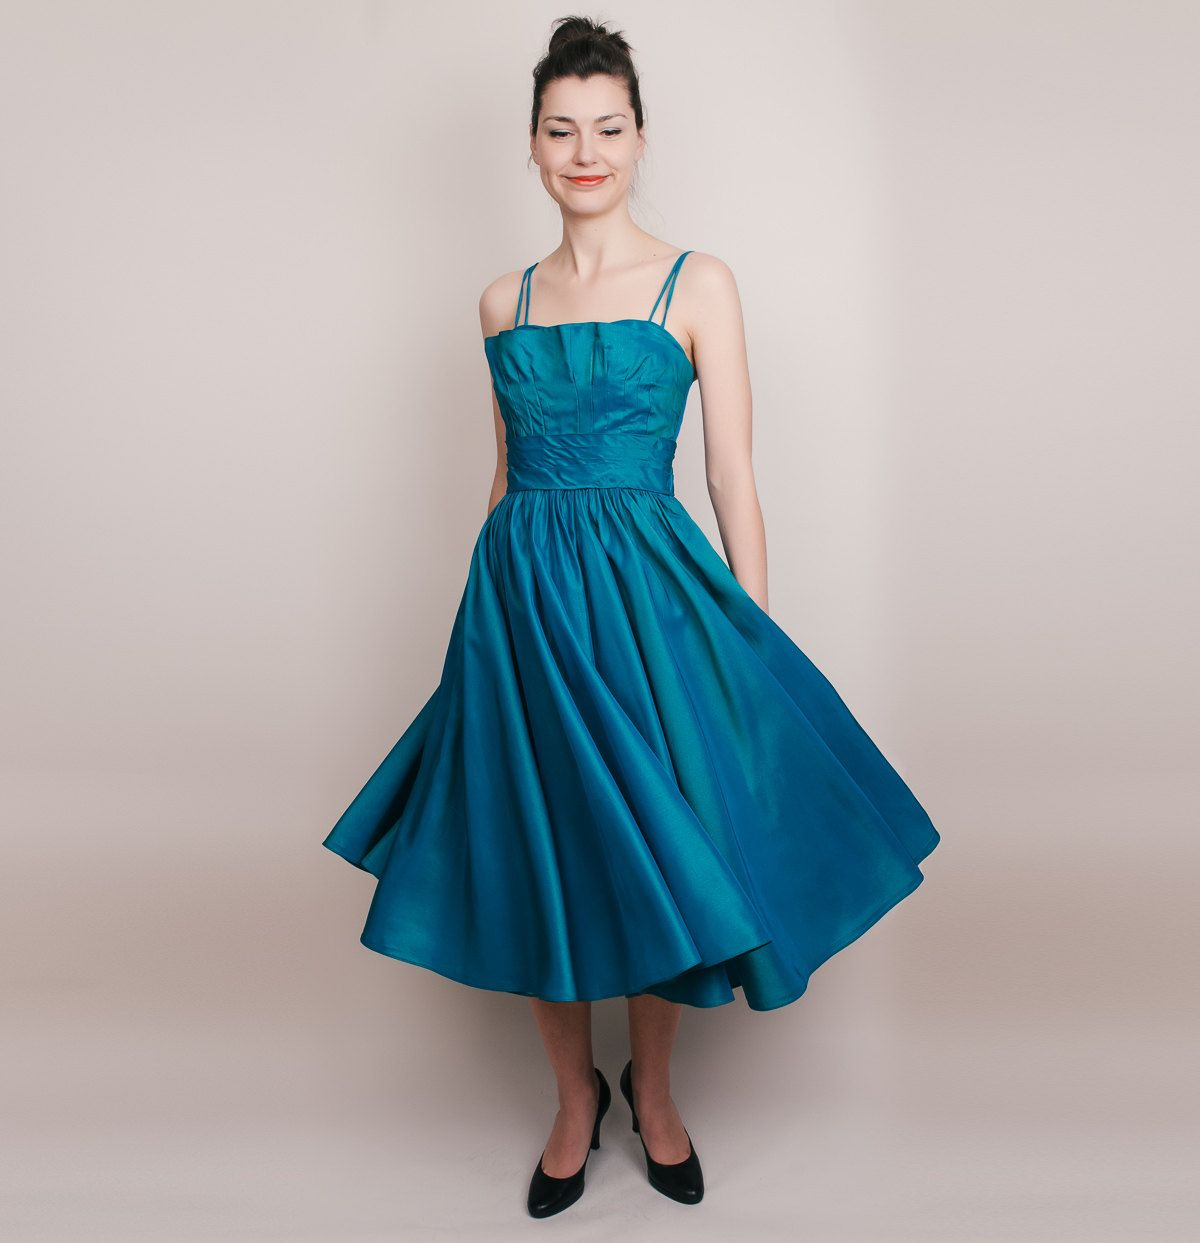 Dresses for 50th wedding anniversary party  s Dress  Vintage s Party Dress  Teal Sharkskin Shimmer  XS